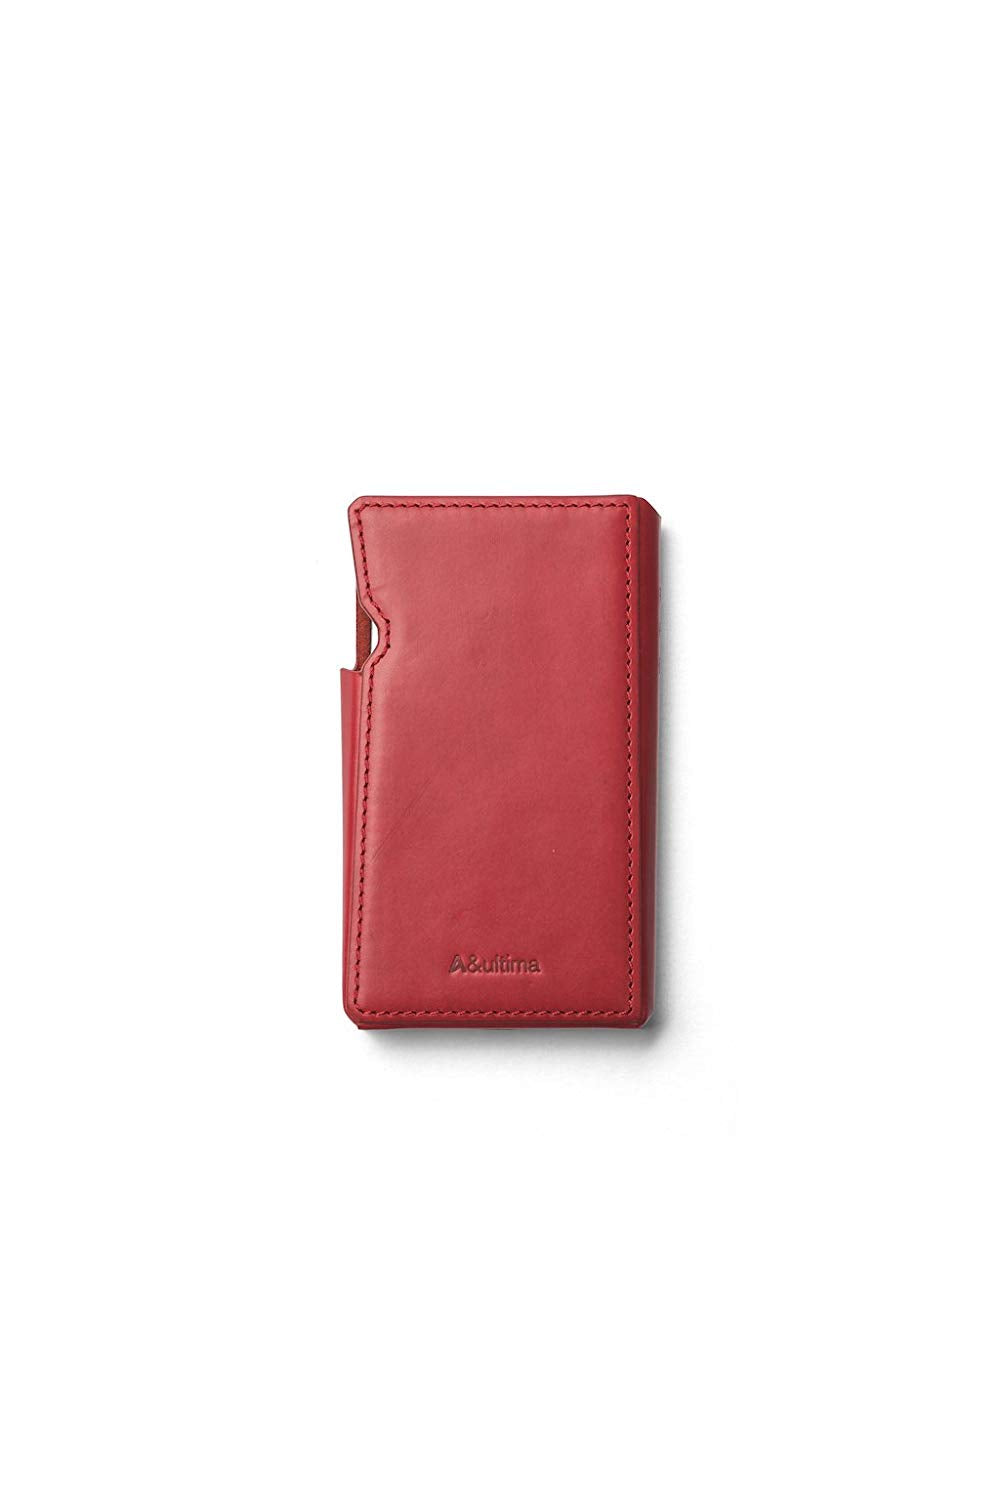 Astell & Kern A&ultima SP1000 Standard Leather Case, Sunny Red